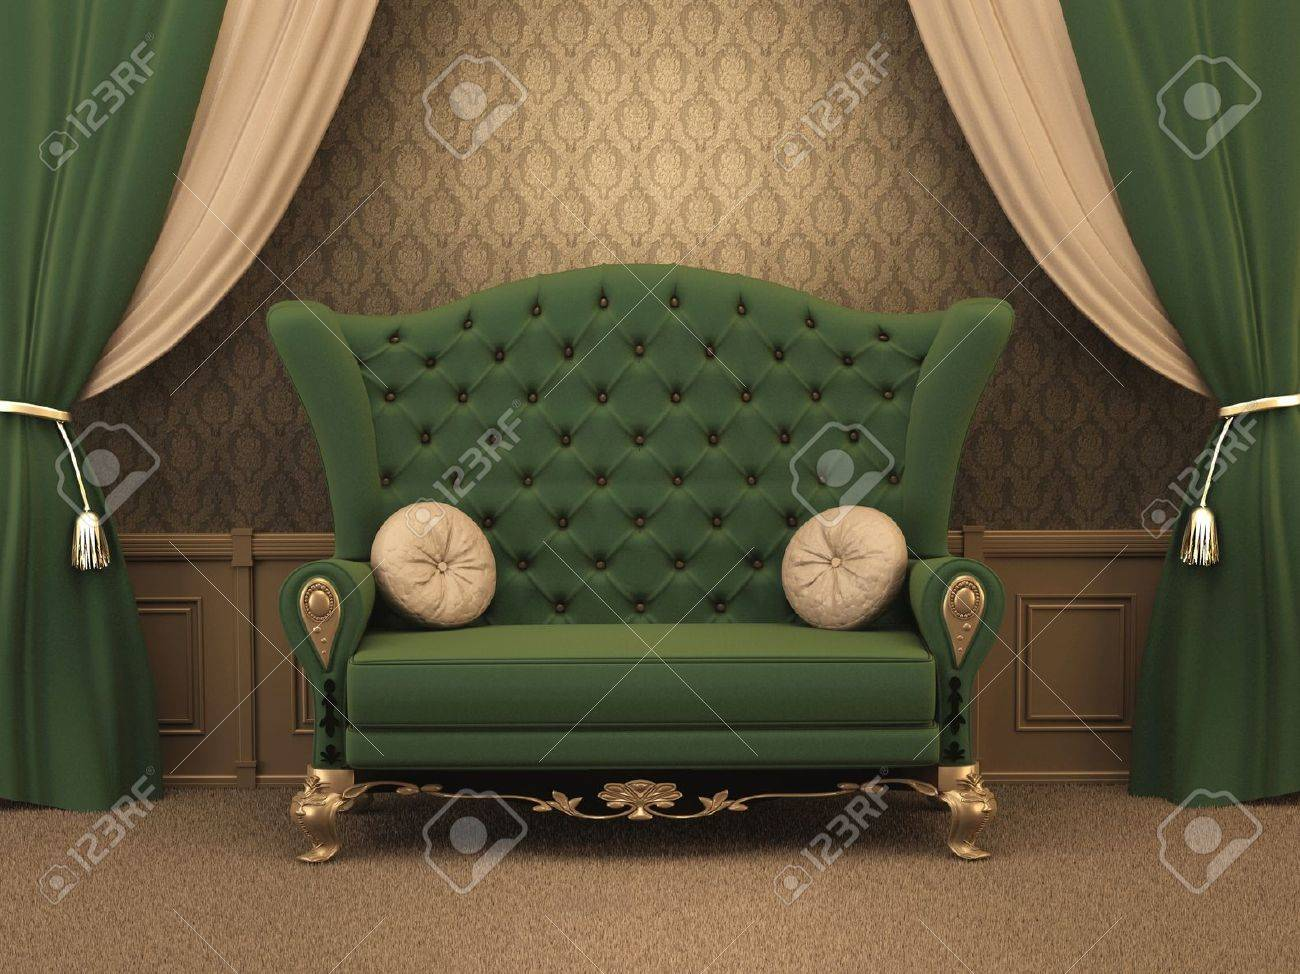 Textured Sofa with pillows and curtain drapery in luxurious apartment. Luxe.  old styled interior. Stock Photo - 10523445